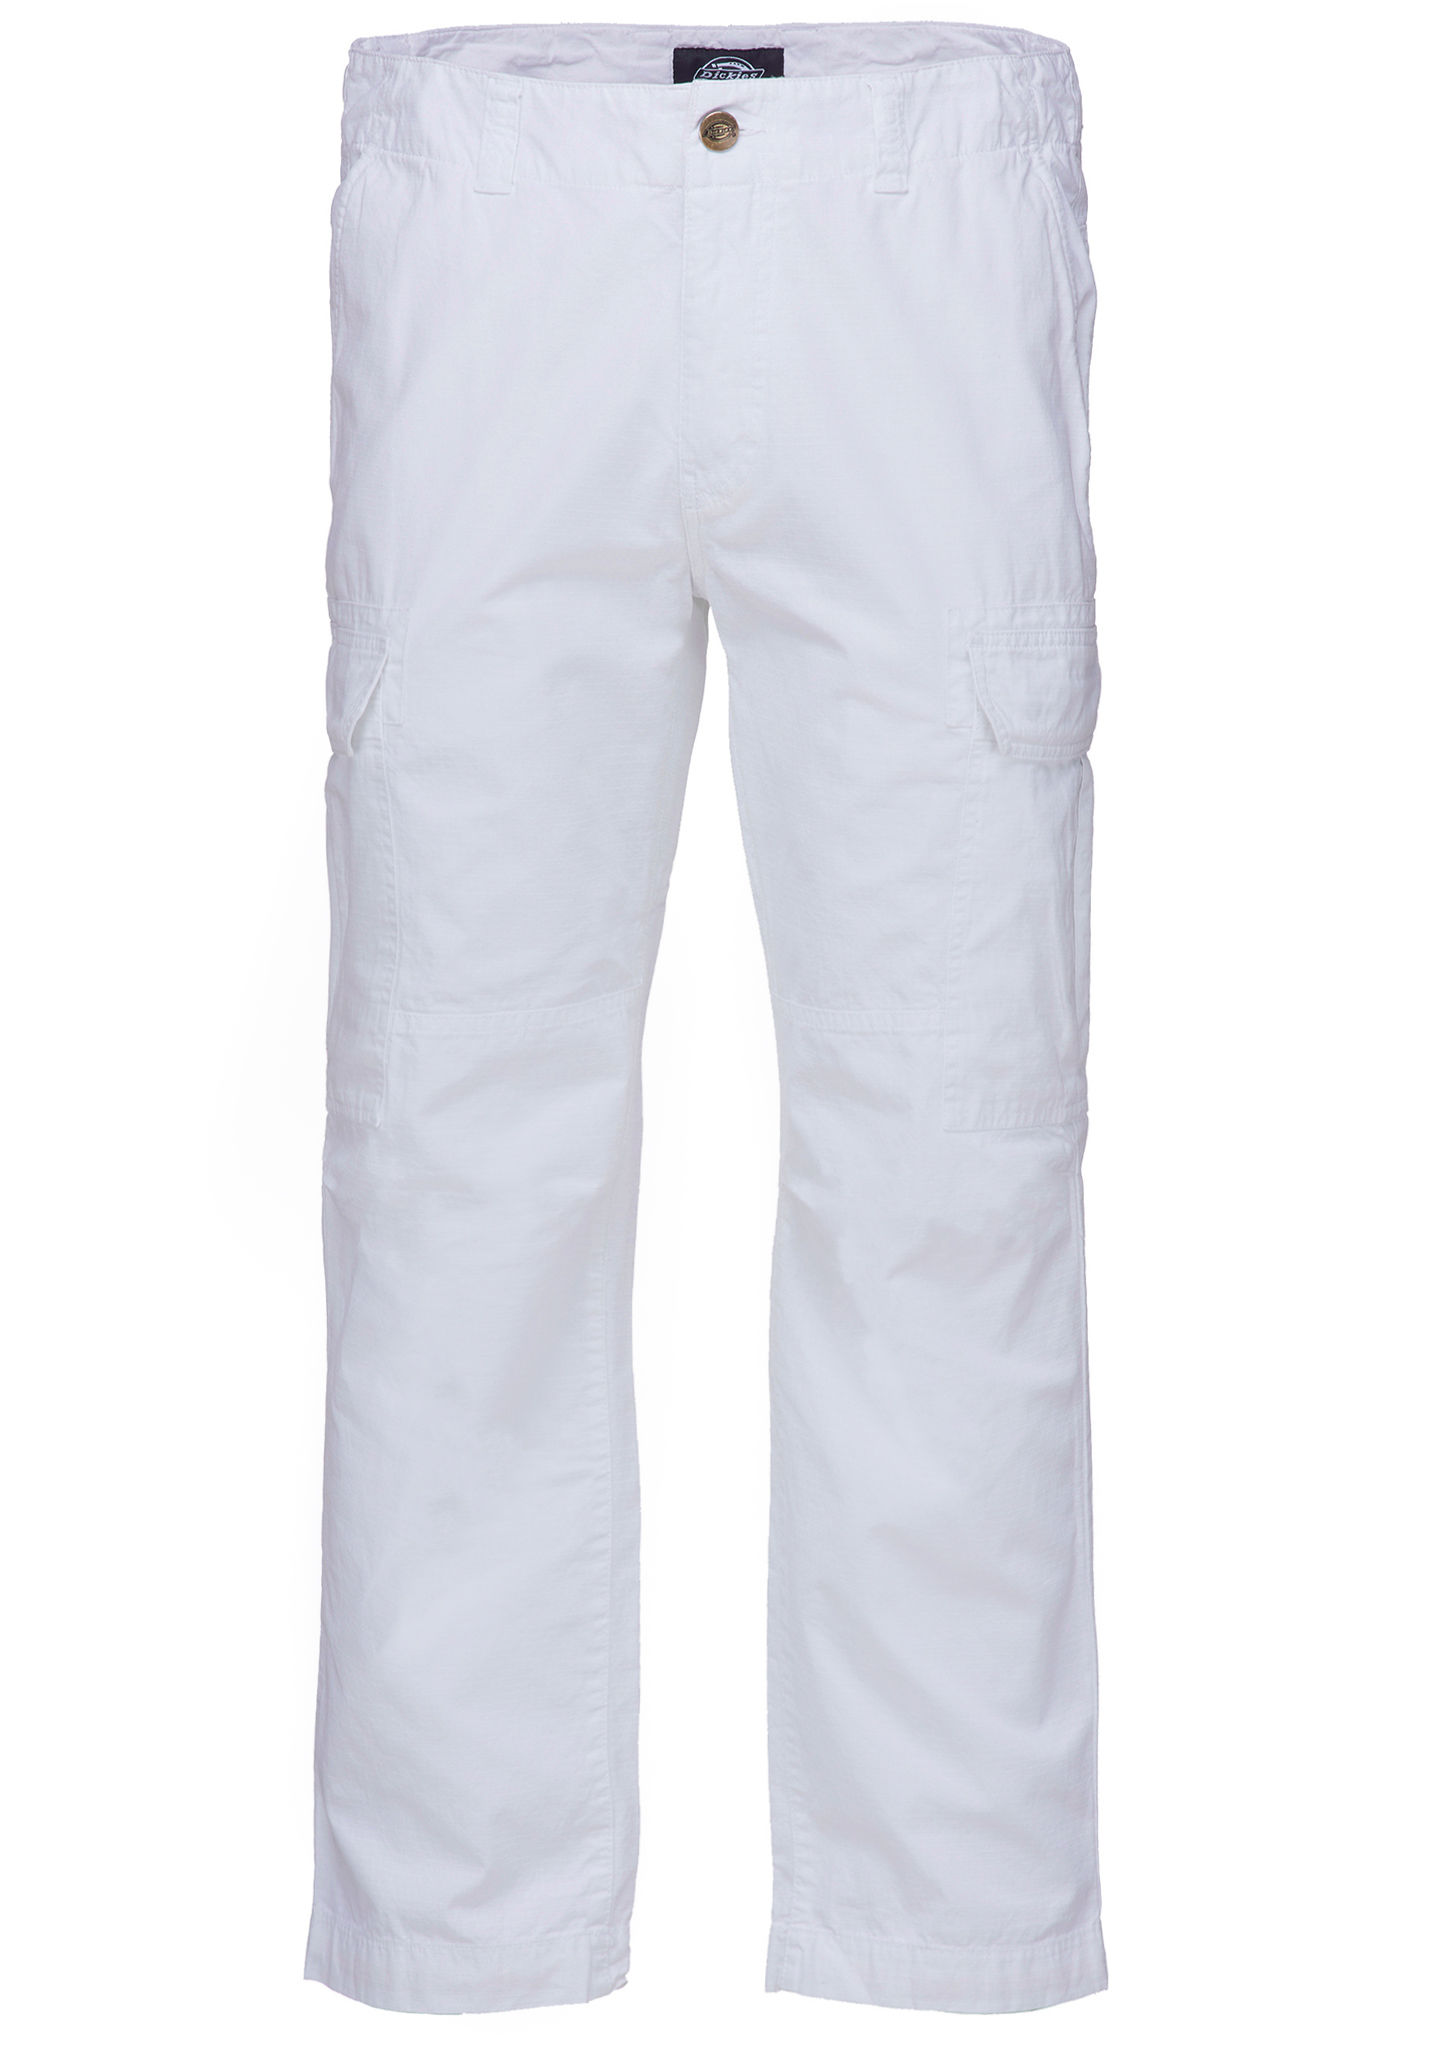 bae419d7e25 Dickies New York - Pantalon cargo pour Homme - Blanc - Planet Sports